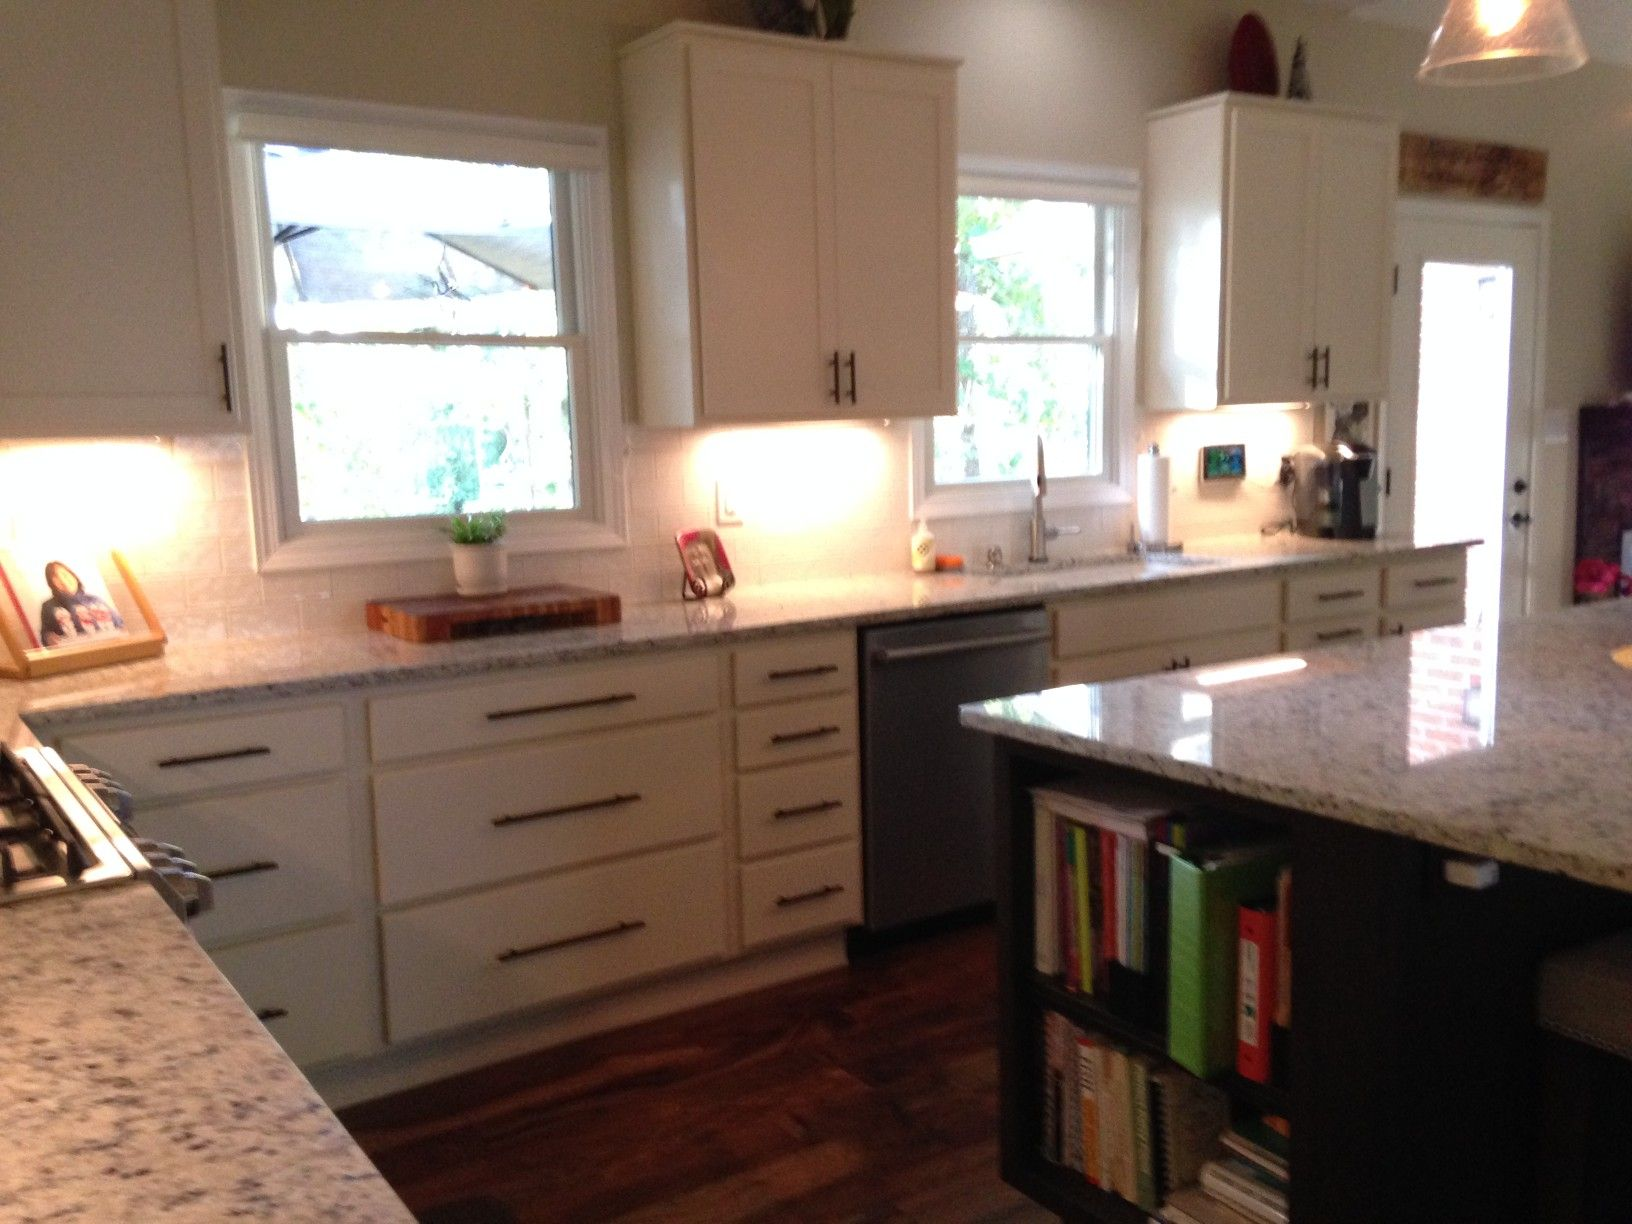 Homecrest Cabinets Arbor Maple Ivory Perimeter And Java Island Kitchen By Angela Raines At Our Galler Kitchen And Bath Showroom Homecrest Cabinets Kitchen Sale